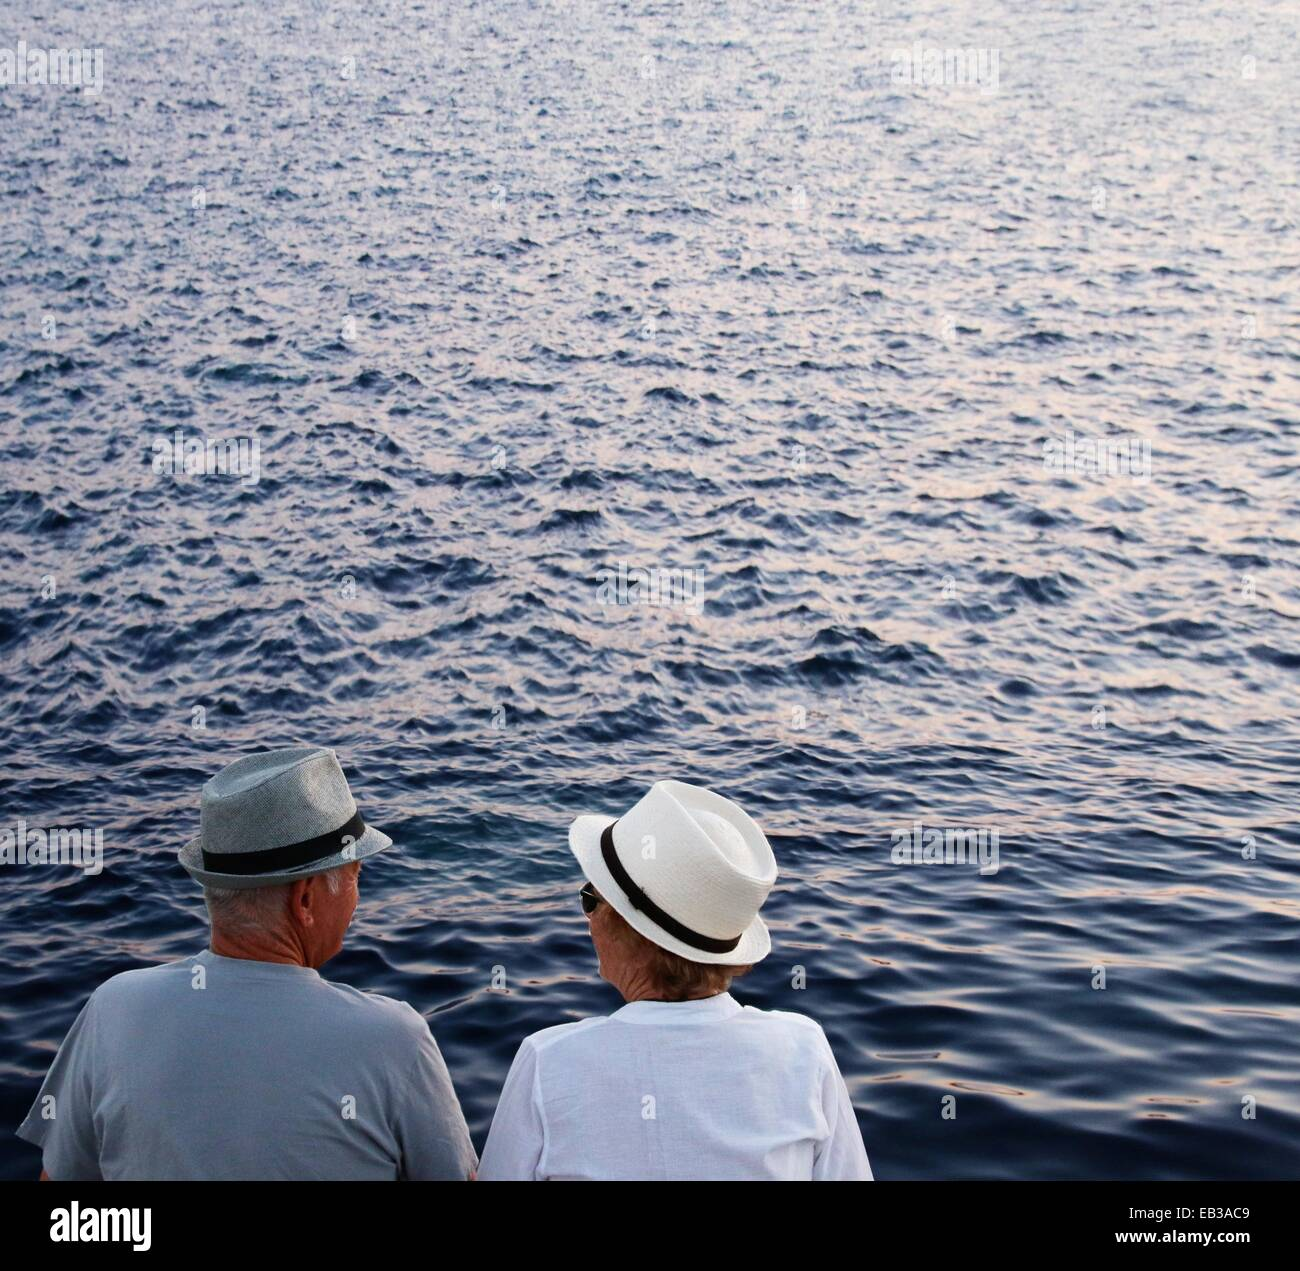 Italy, Sardinia, Couple with hats looking at sea - Stock Image